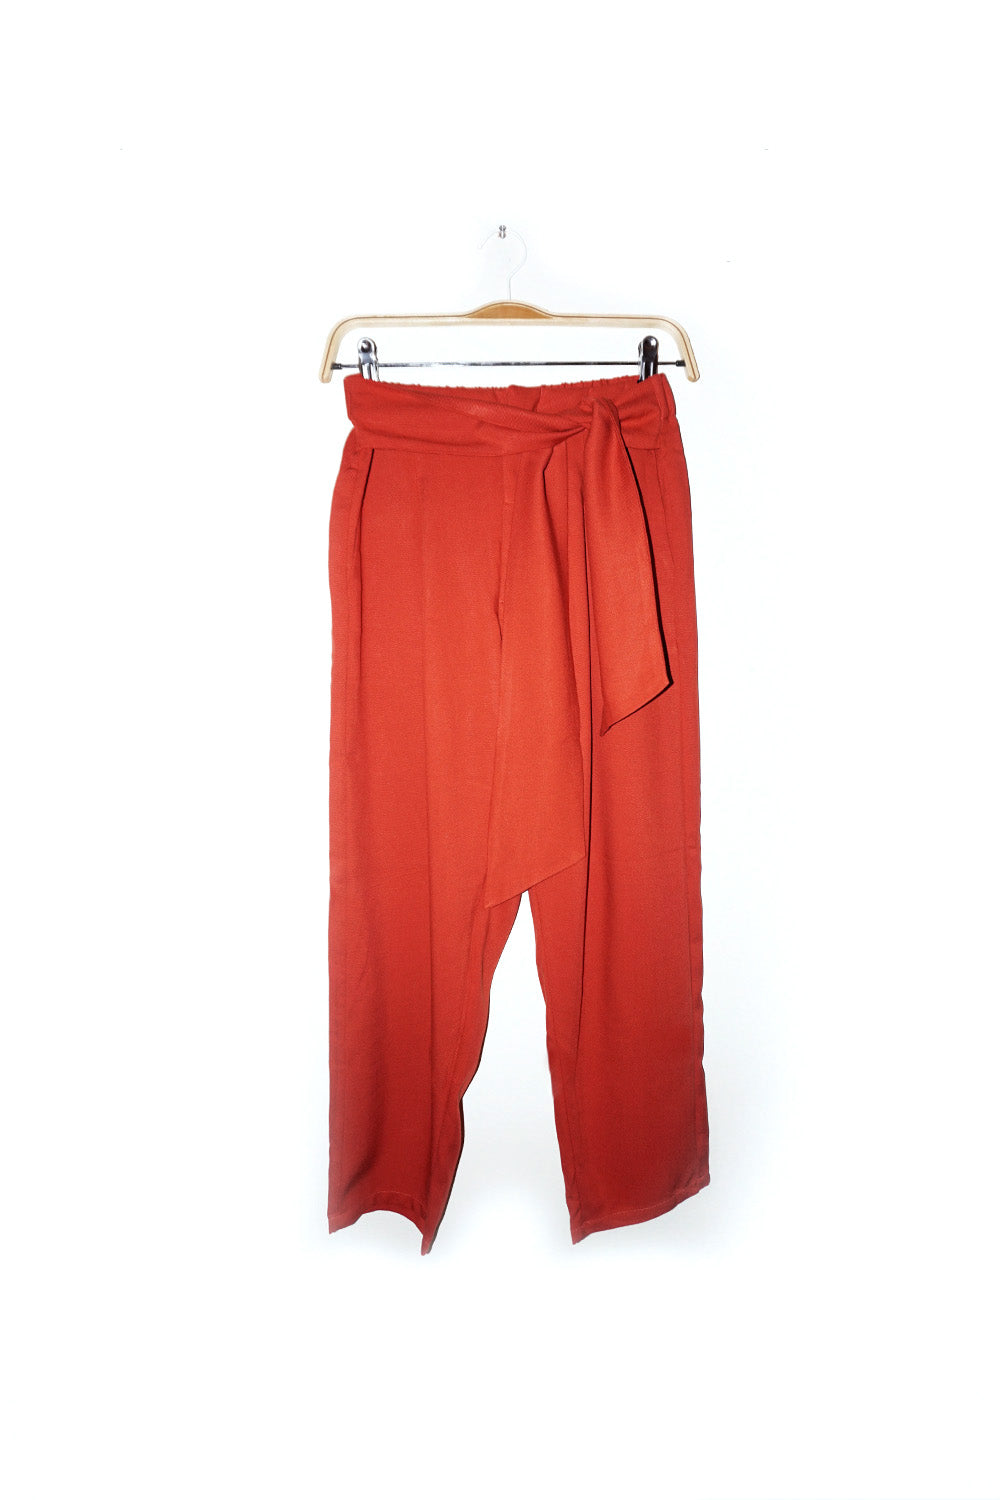 Jorja Pants with tied front details linen Celana relaxed fit dengan detail ikat di tengah